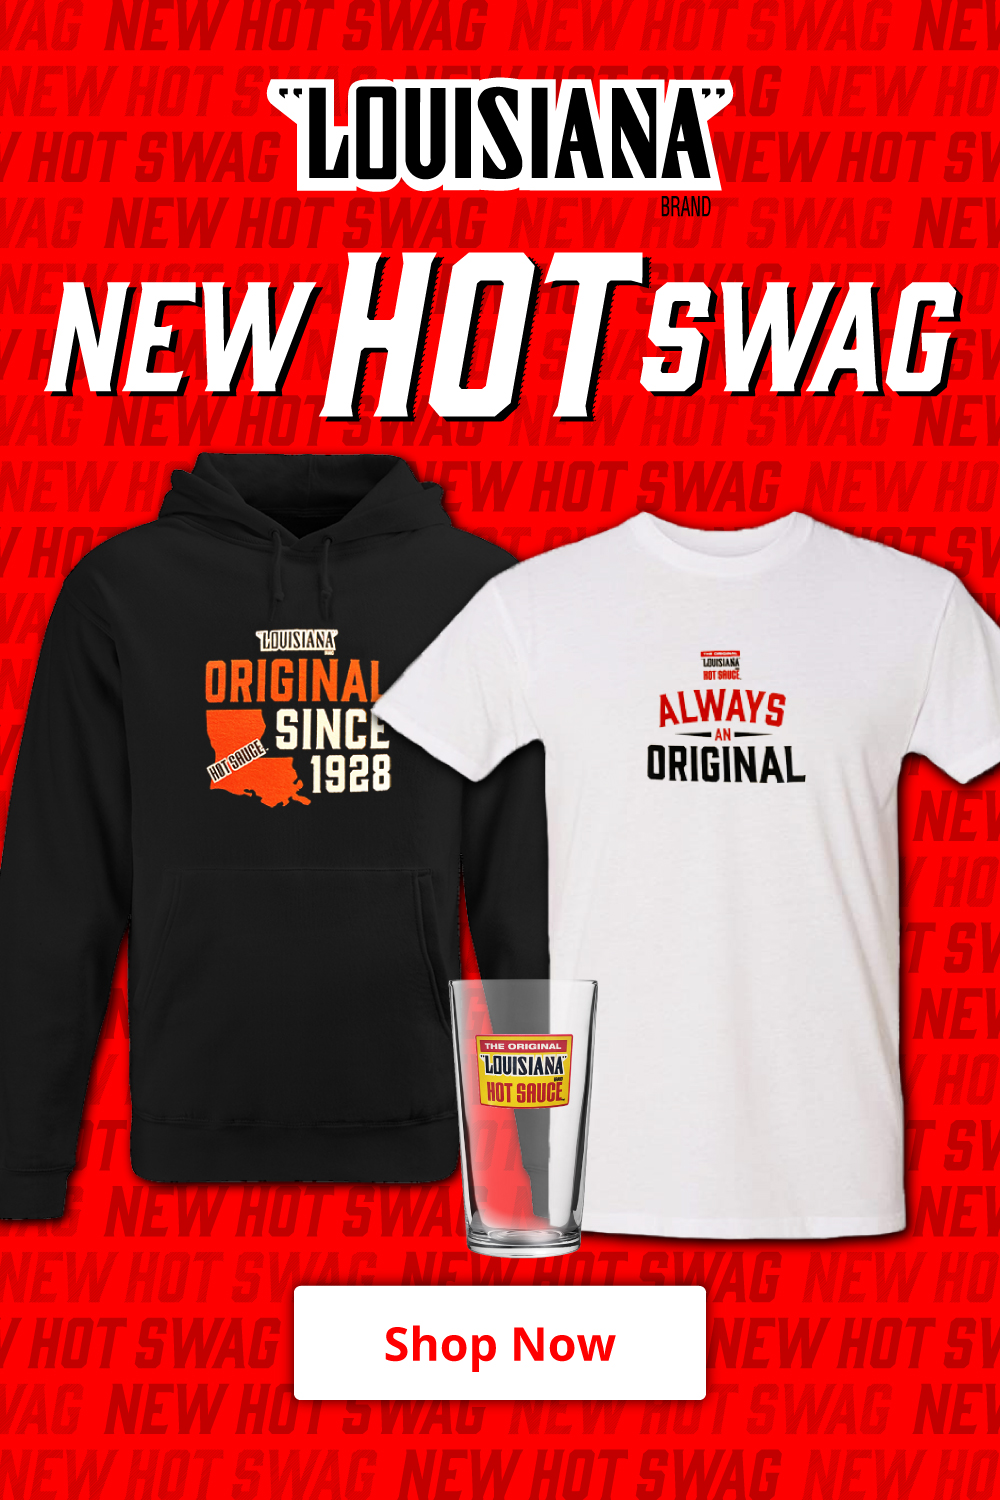 Check out our merch